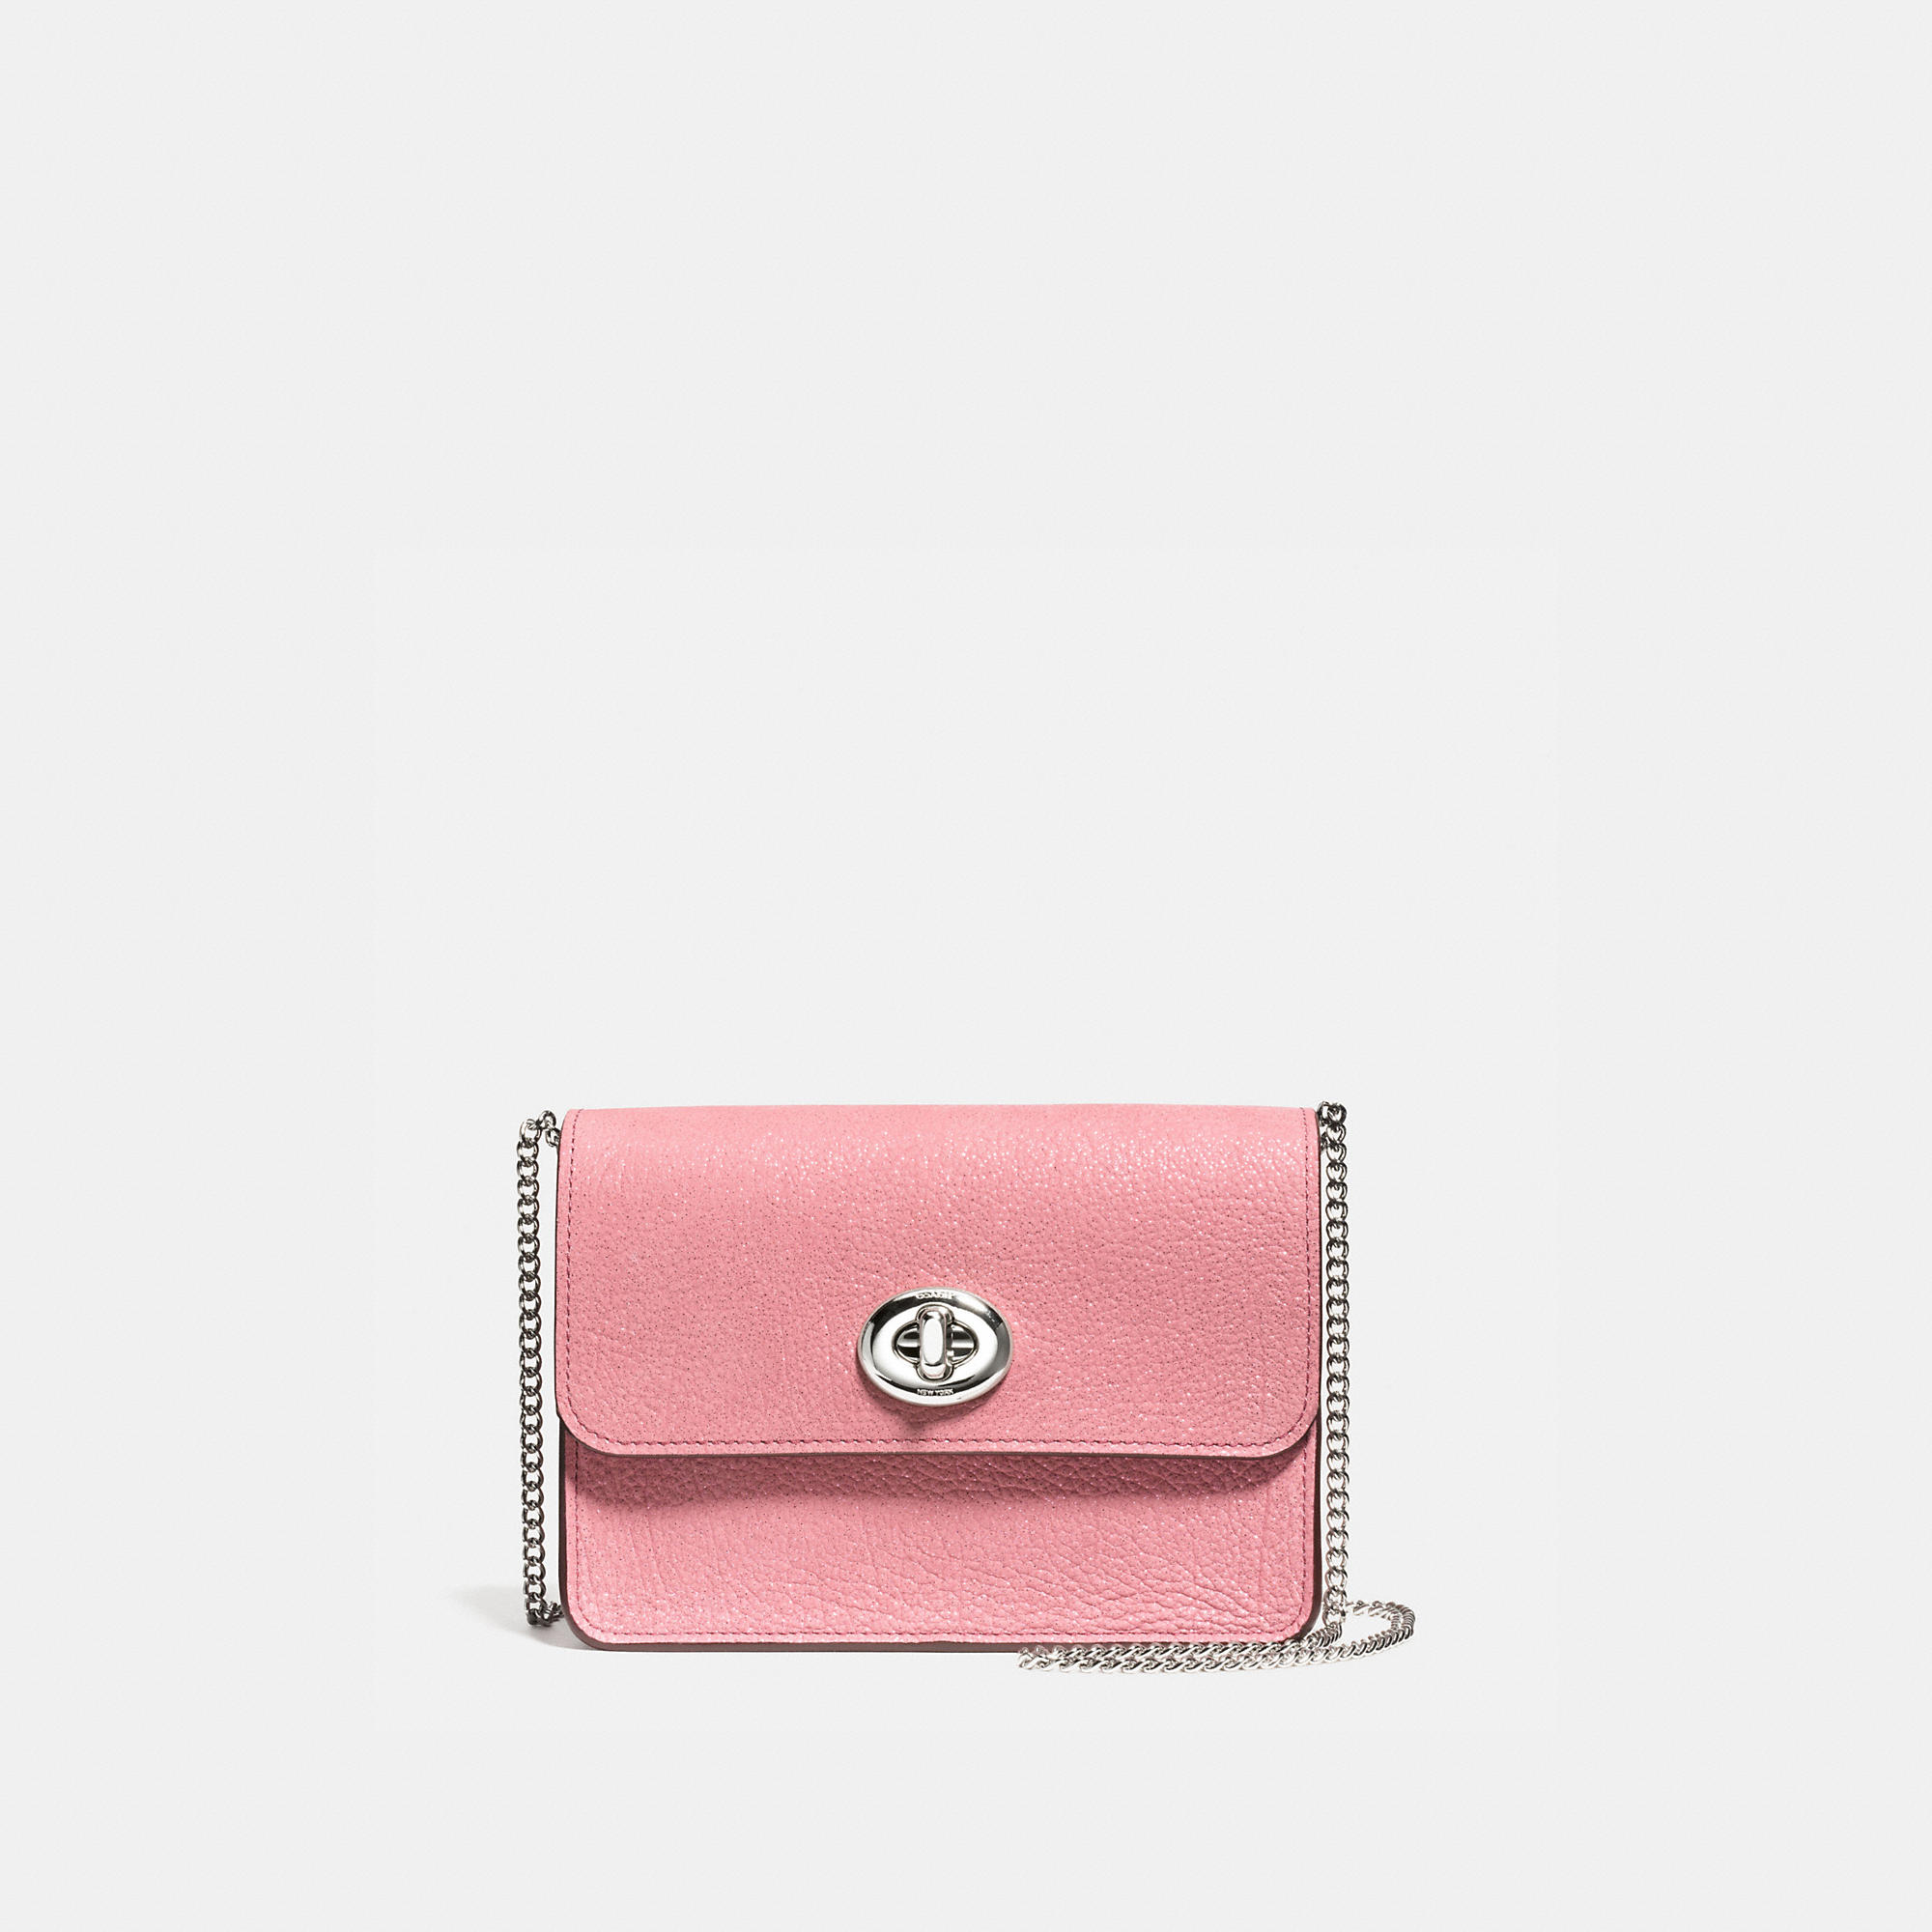 Coach Bowery Crossbody In Glitter Rose Grain Leather